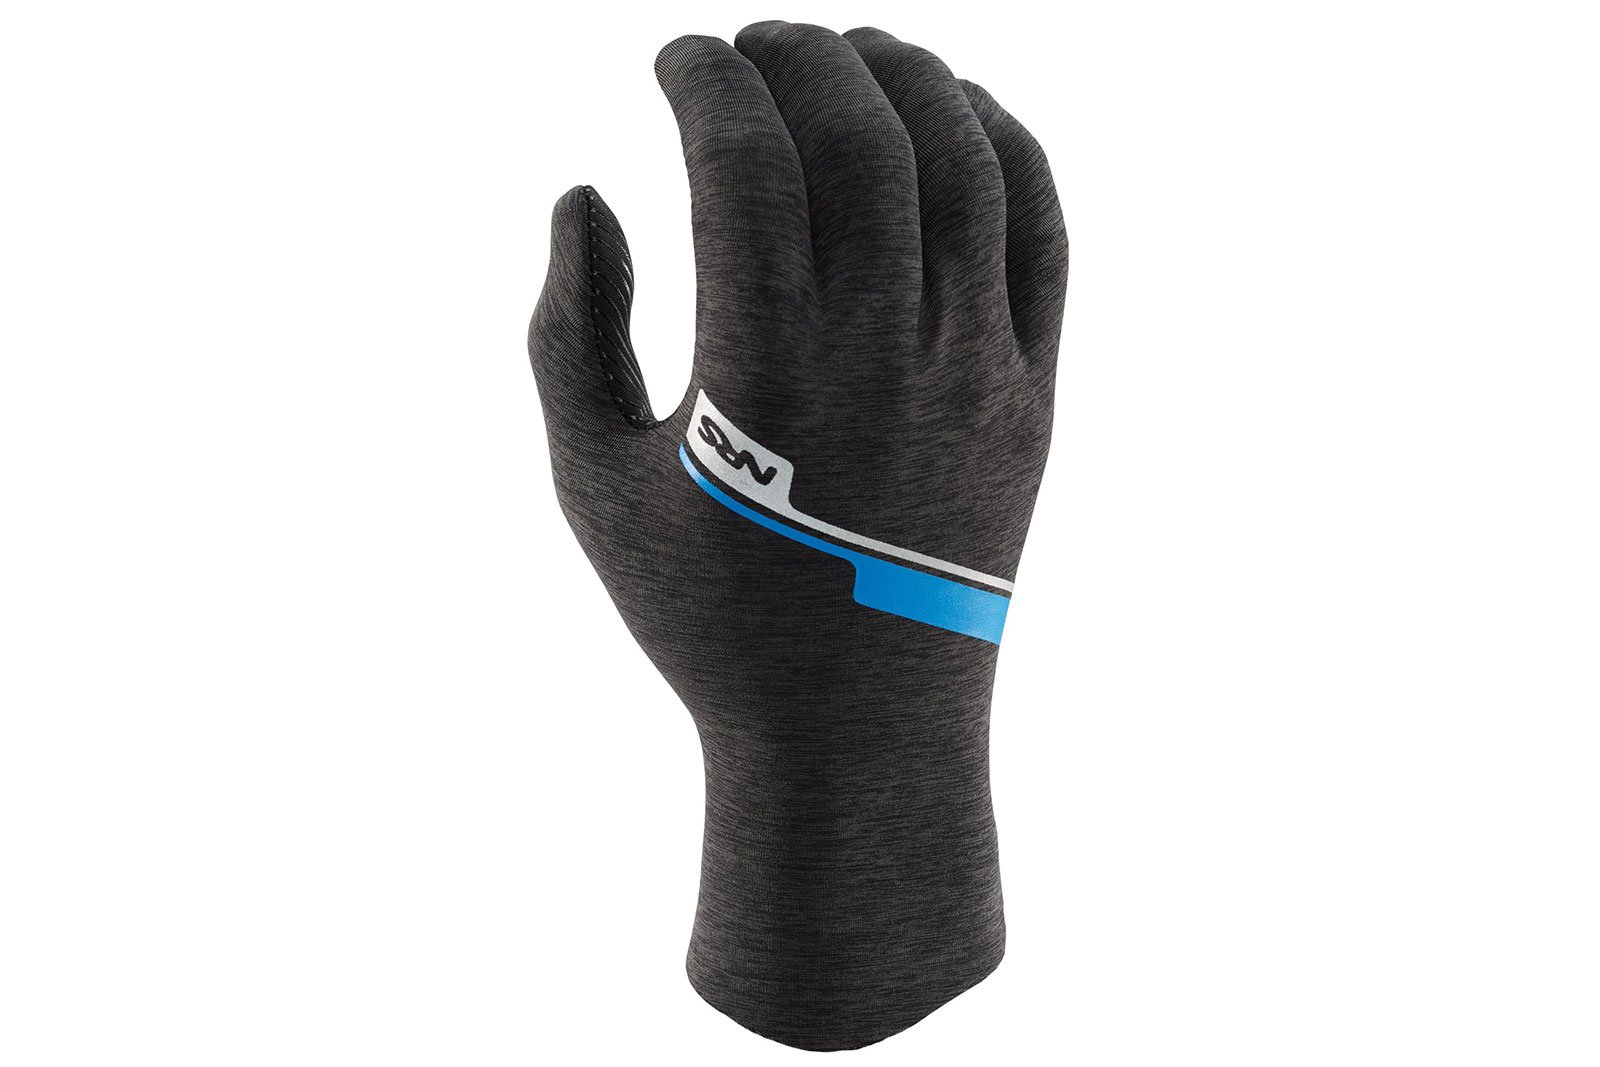 <img class='new_mark_img1' src='https://img.shop-pro.jp/img/new/icons5.gif' style='border:none;display:inline;margin:0px;padding:0px;width:auto;' />NRS Men's HydroSkin Gloves ハイドロスキングローブ  (25014)